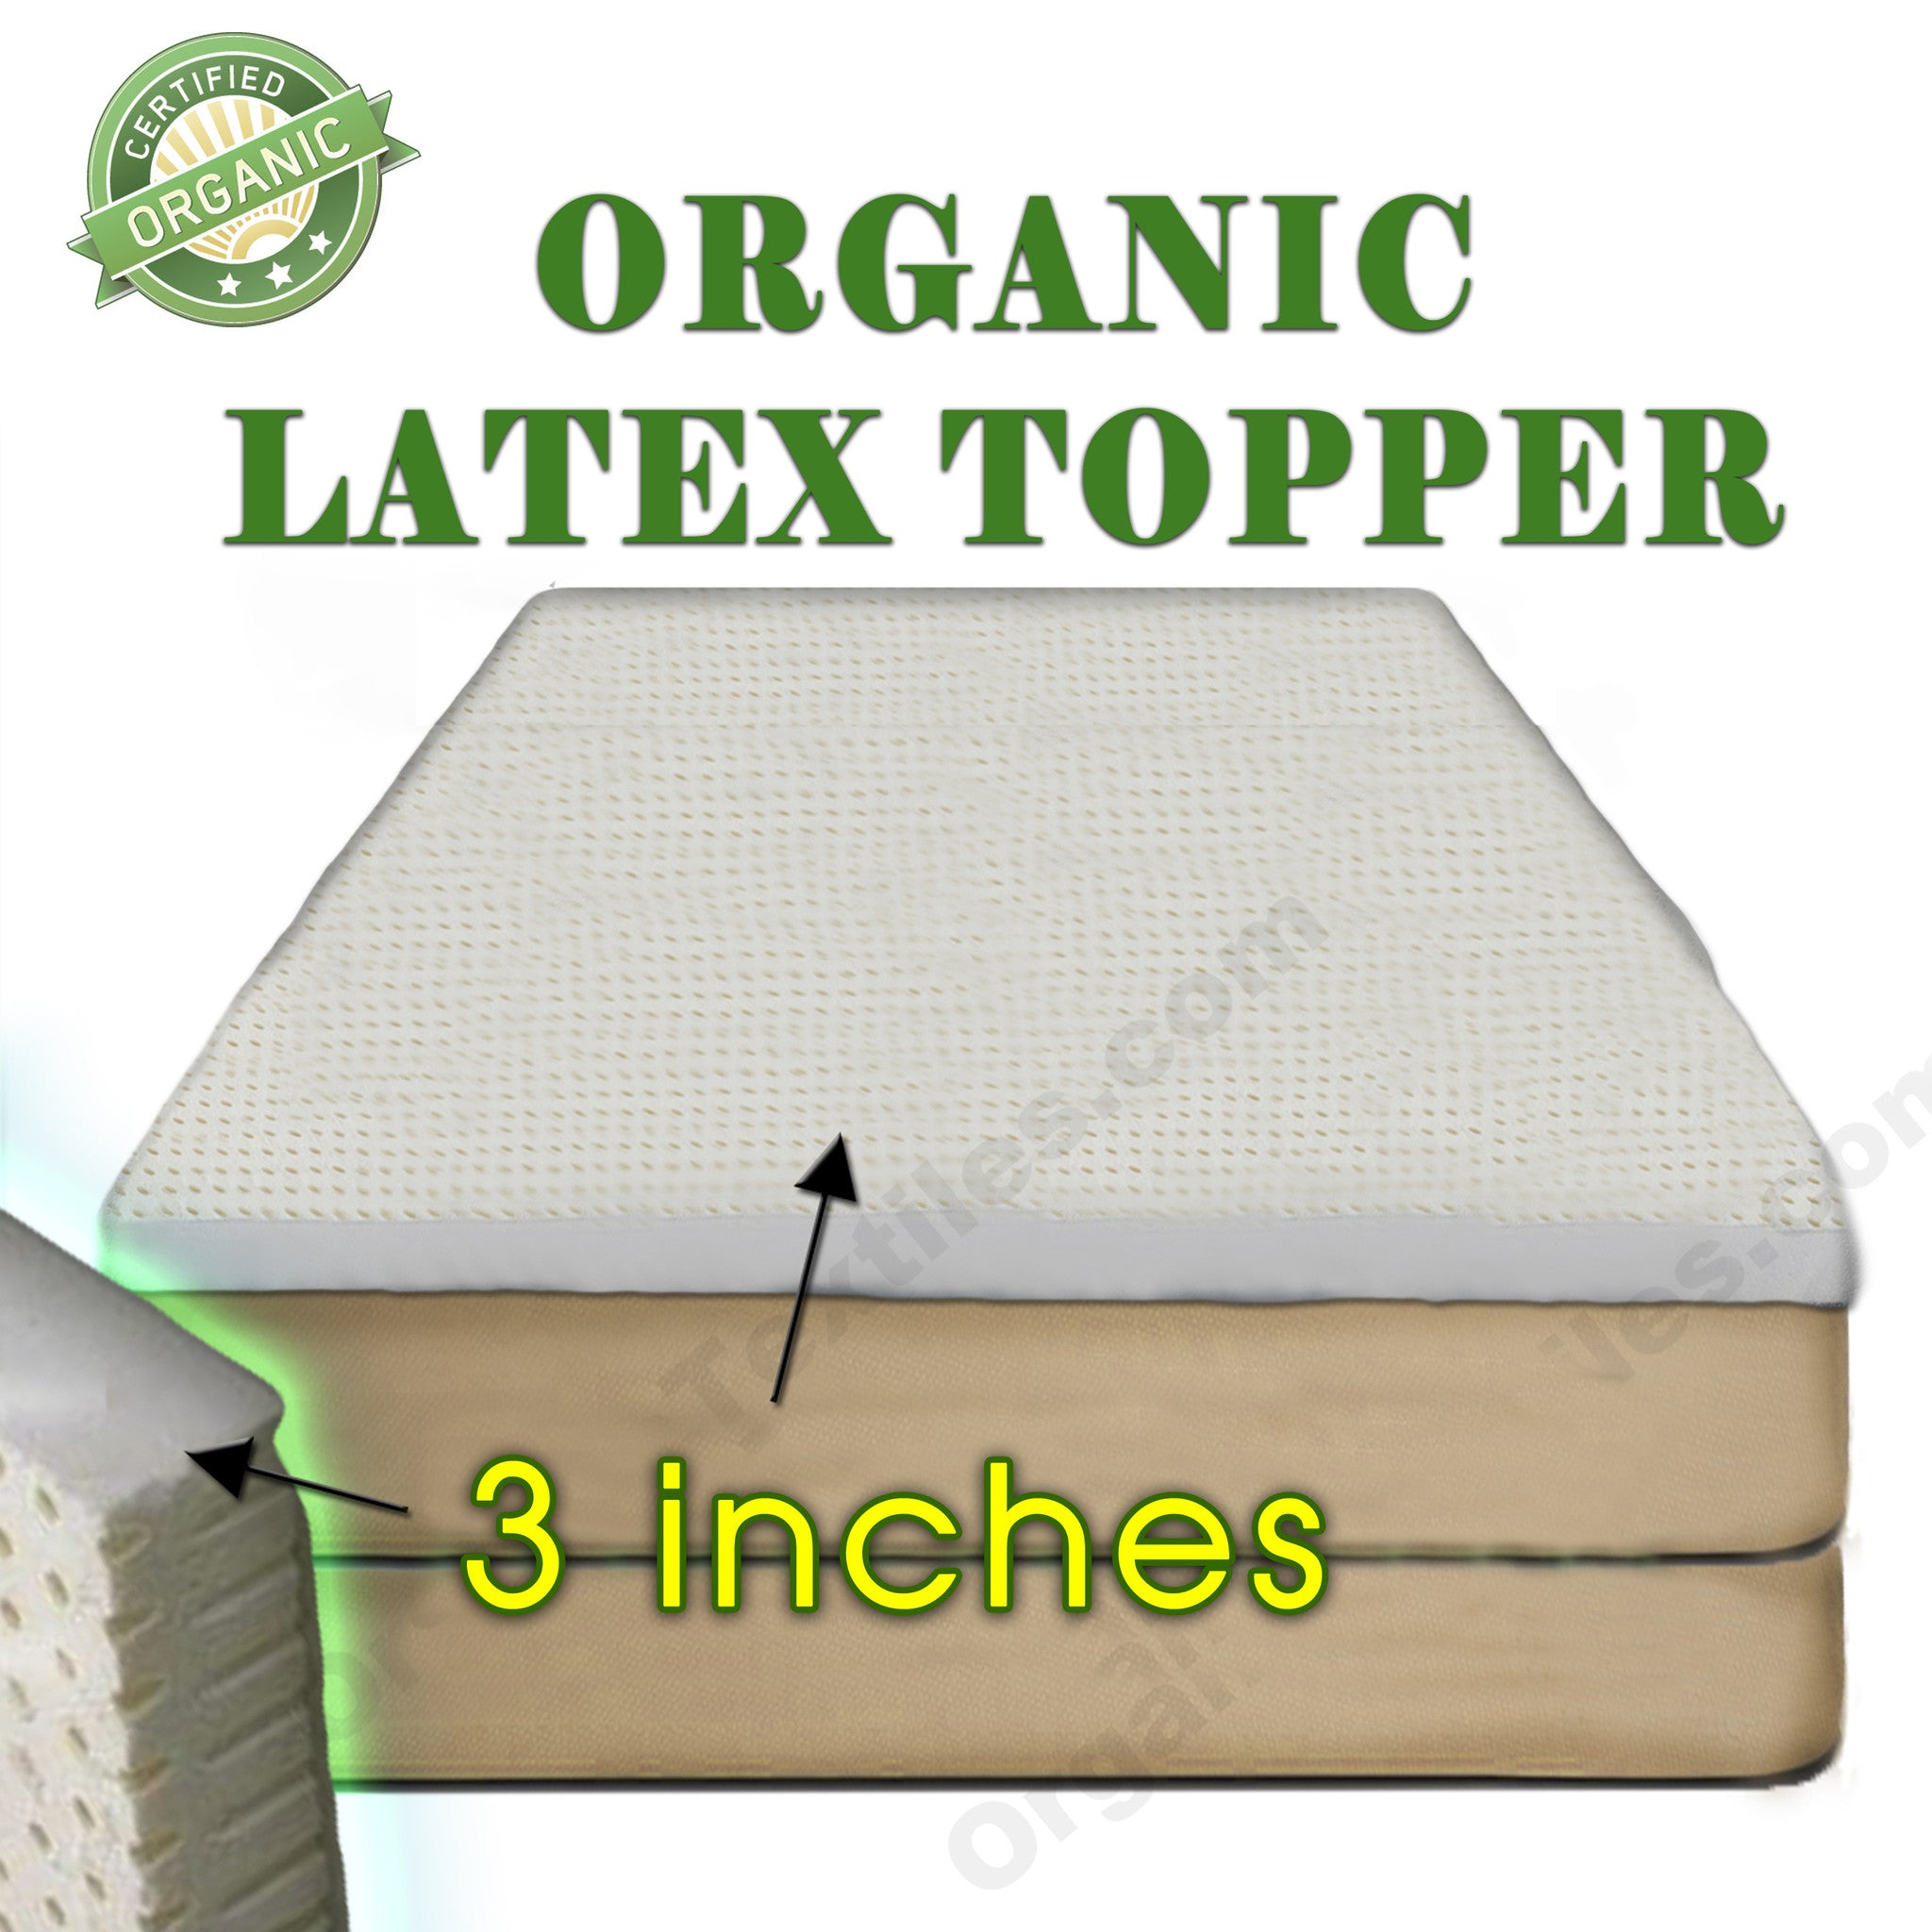 memory commendable mattress inch baby inspirational bed ventilated of crib rated latex green my captivating size natural top cribtoddler organic foam stunning ikea en cool brilliant topper satis best source full milliard